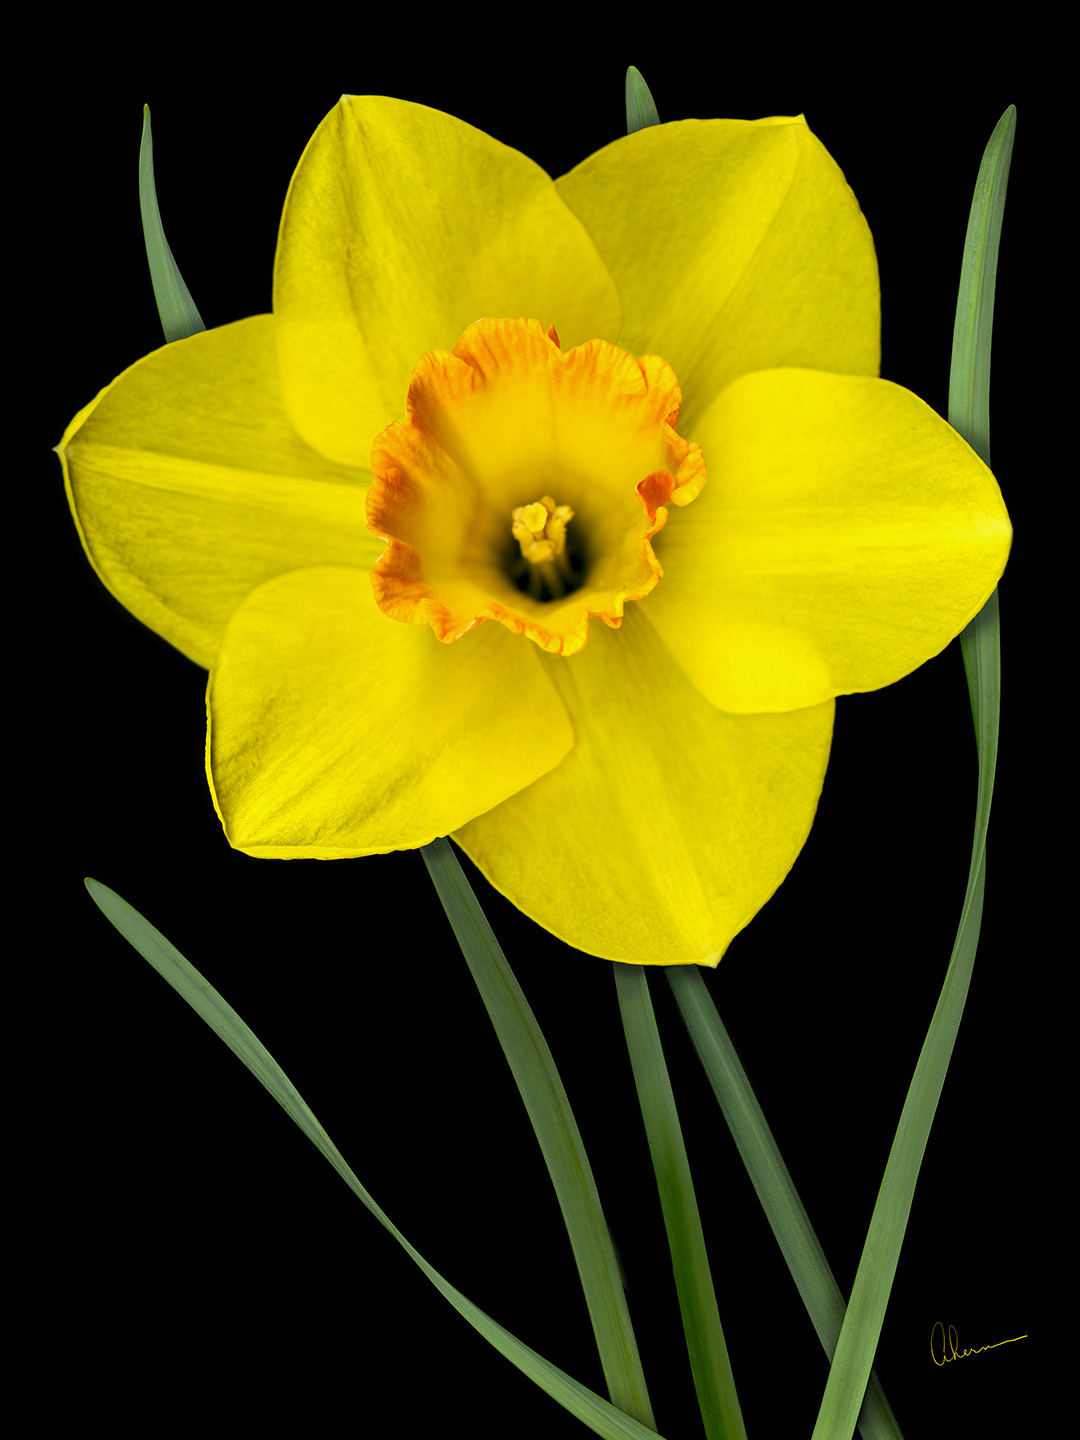 Single Yellow Daffodil. Art print by Mary Ahern the Artist.